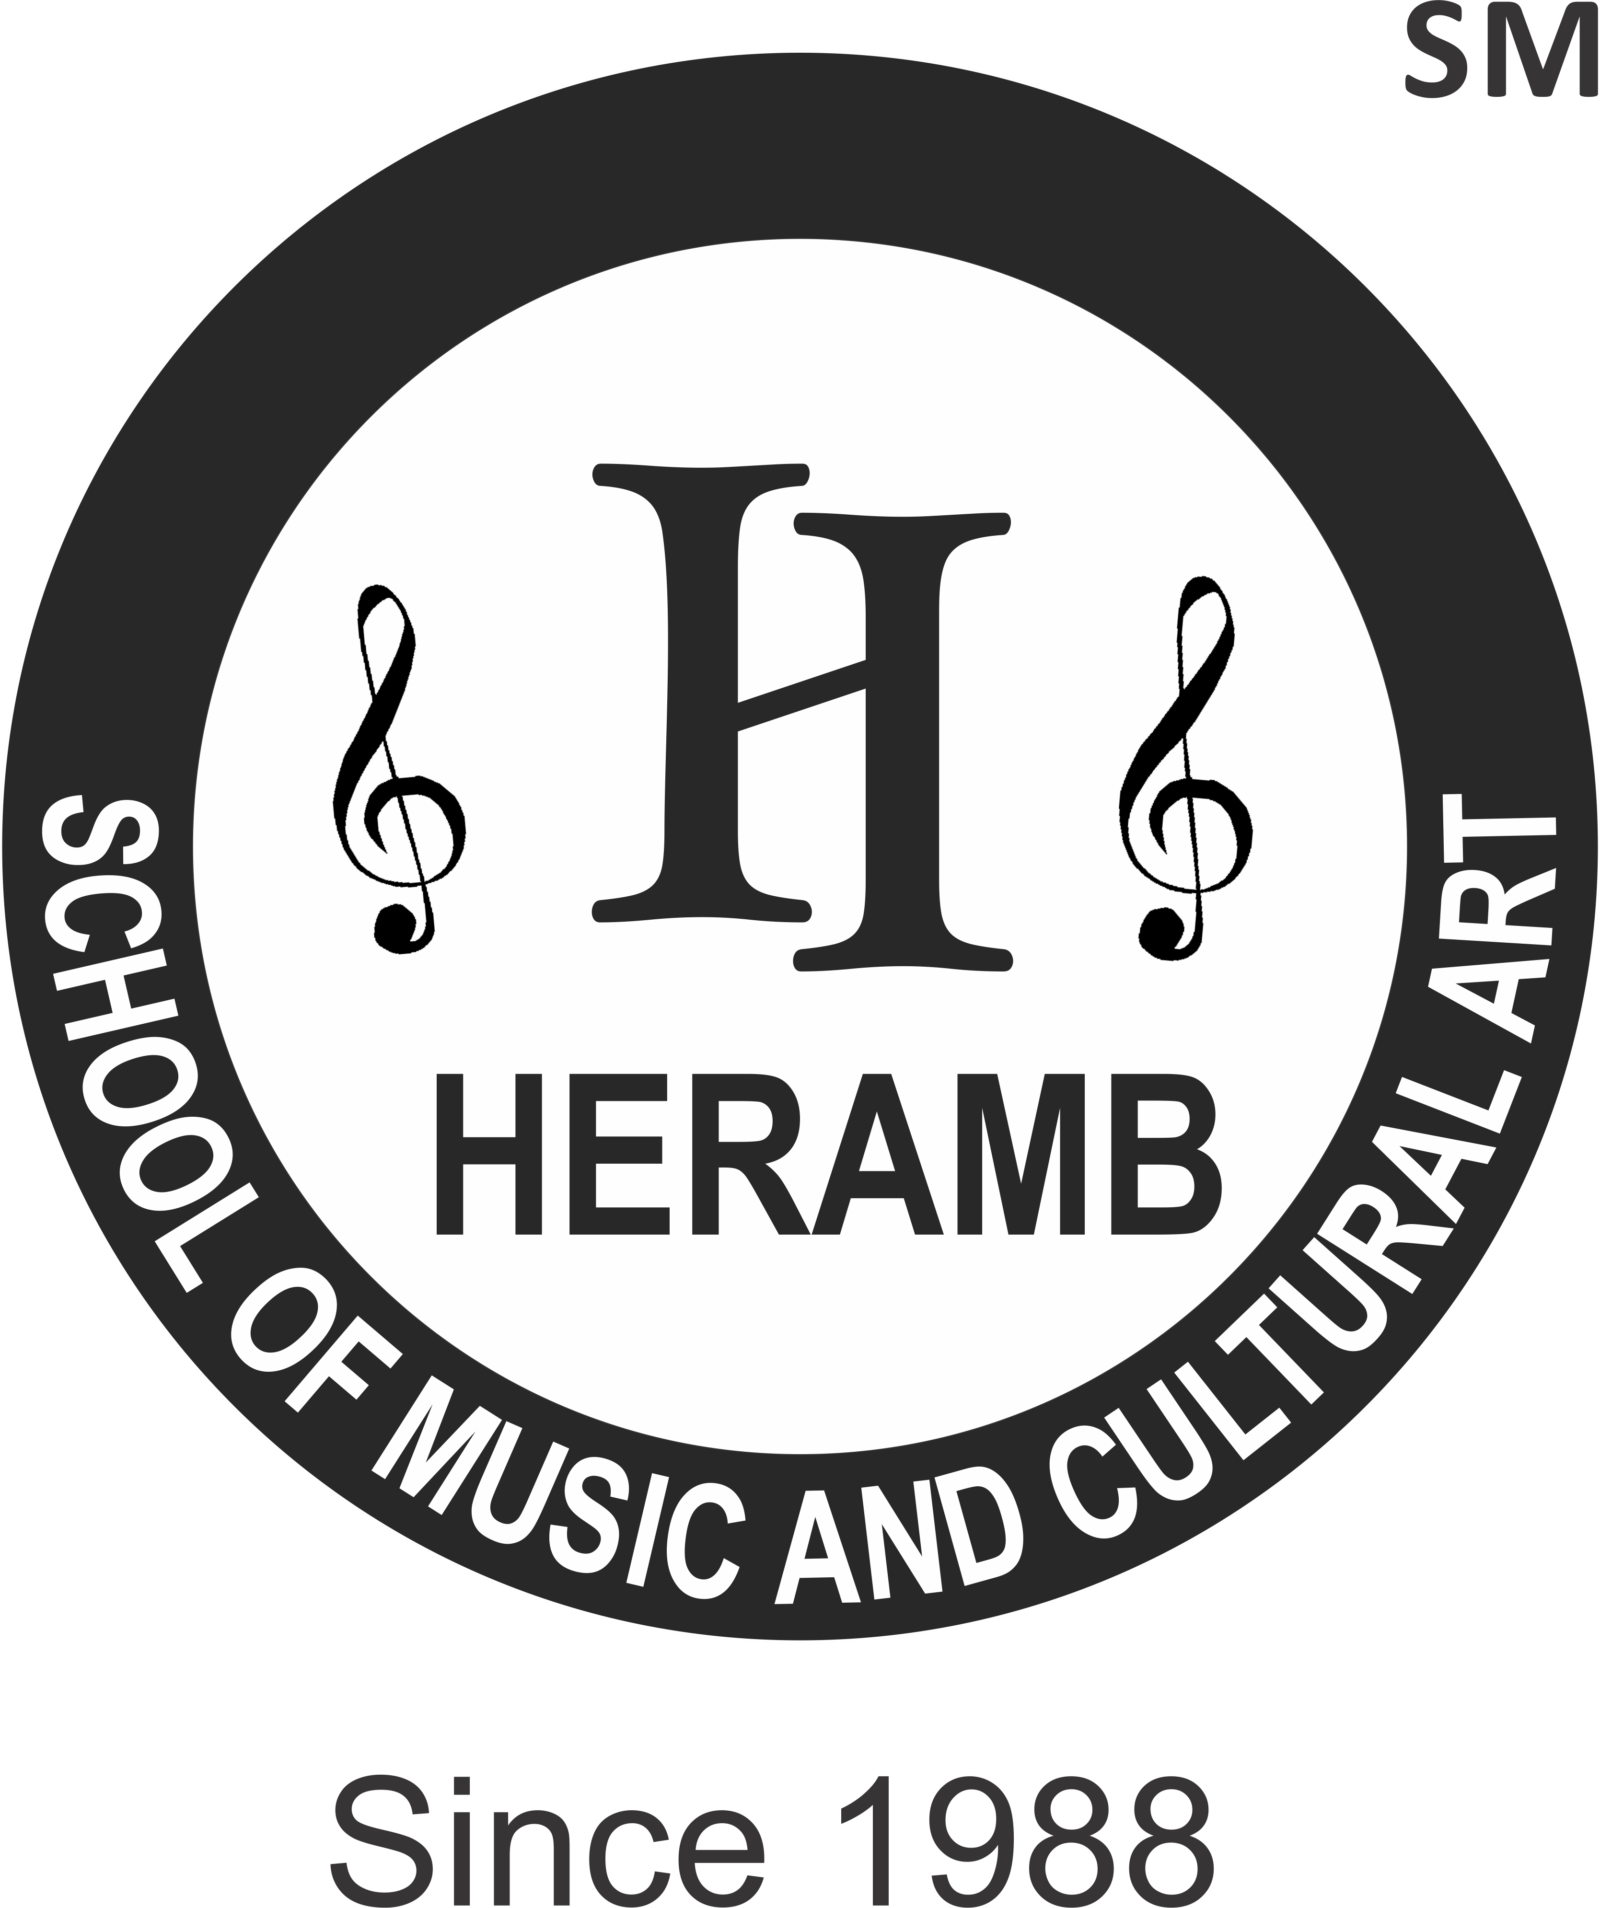 Heramb School Of Music & Cultural Arts - Dombivli - Thane Image